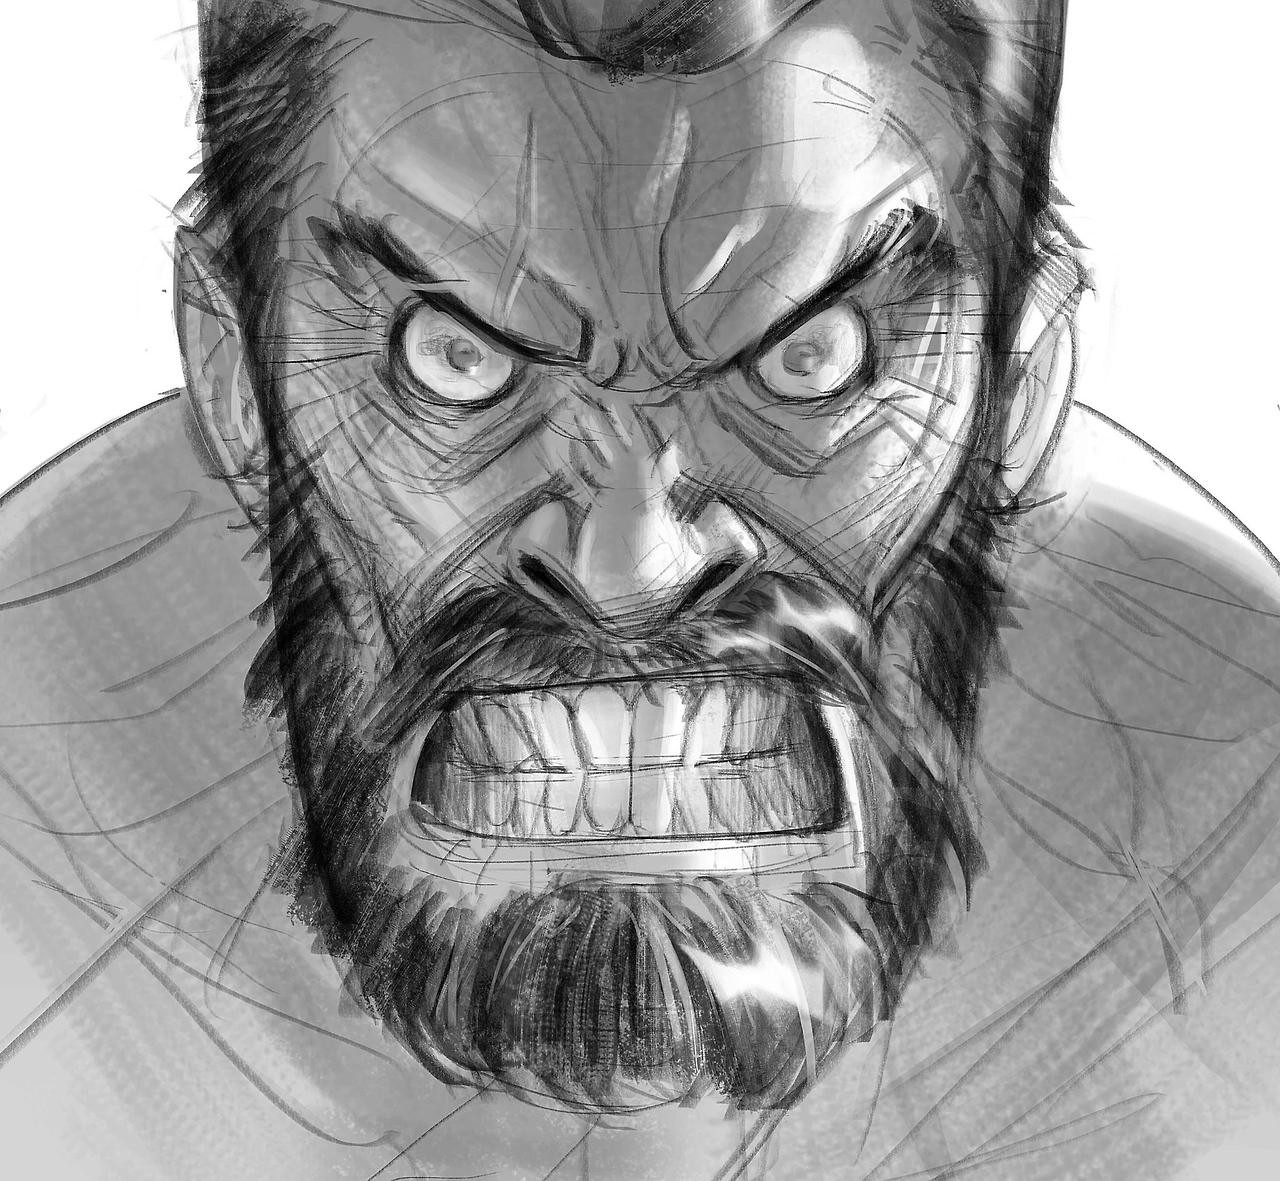 At some point I will get tired to draw Logan but not today! what you think about the movie?